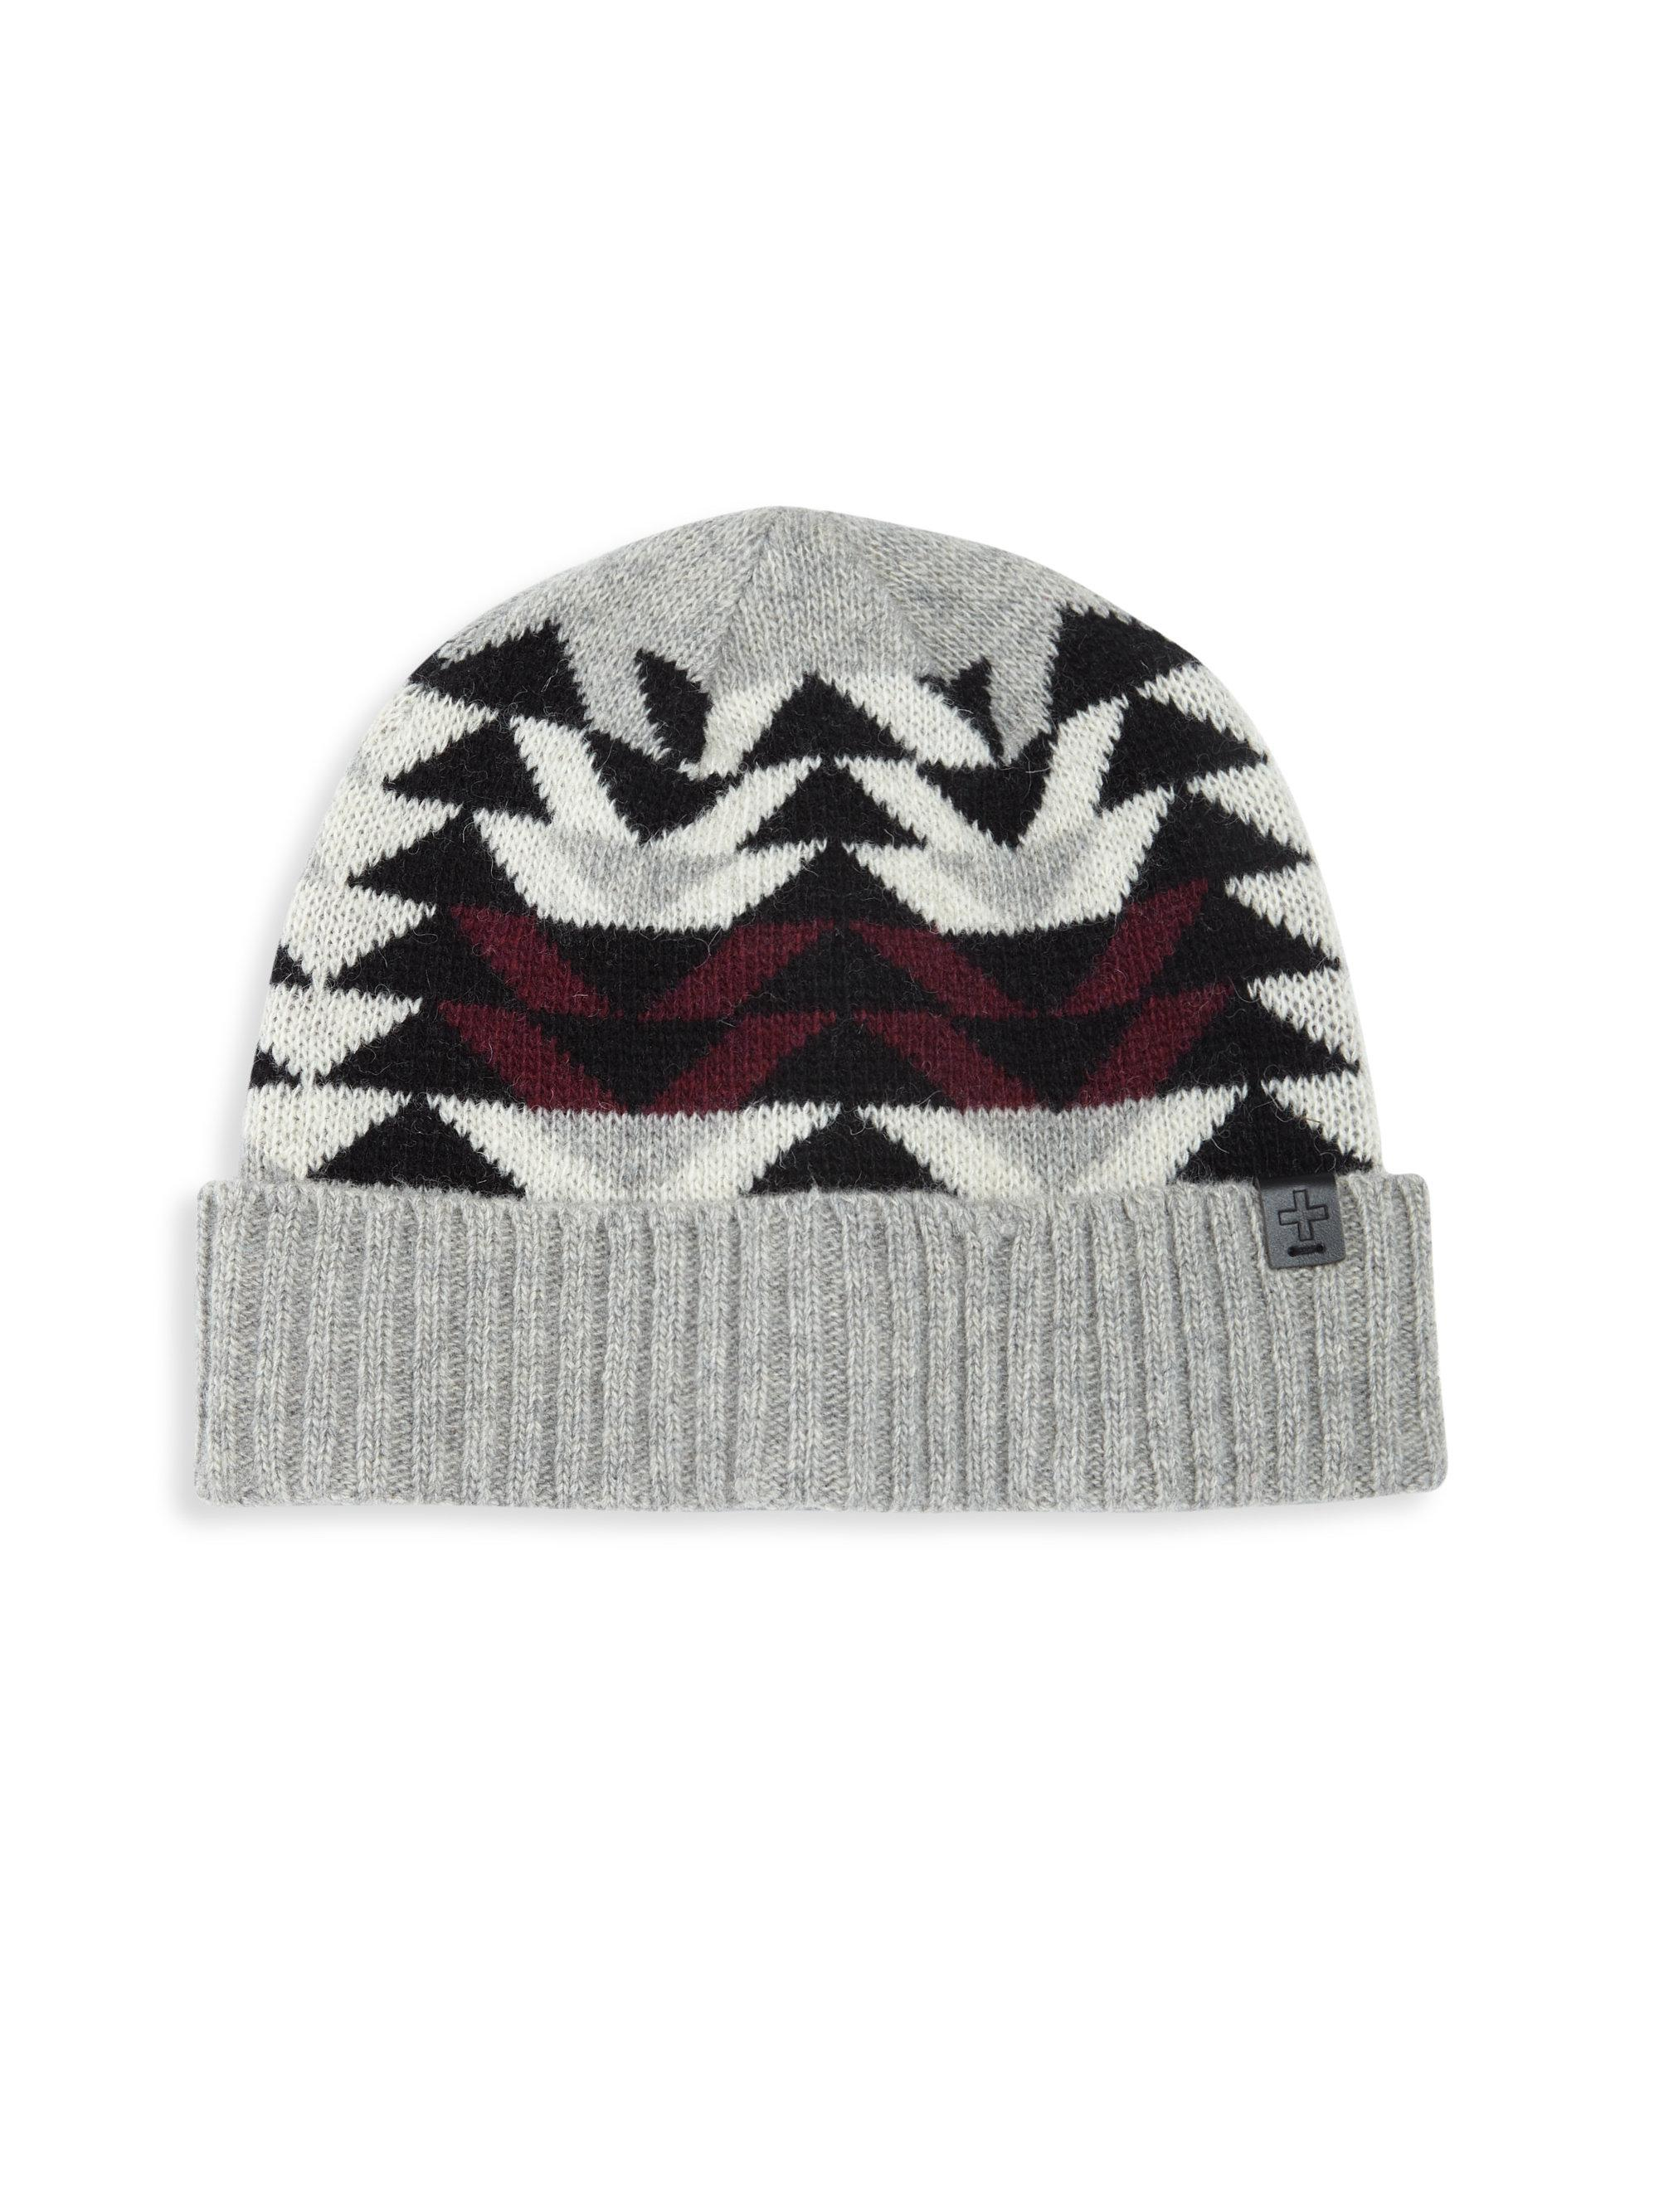 866e7dae147 Bickley + Mitchell Lambswool Blend Colorblock Knit Beanie in Gray ...